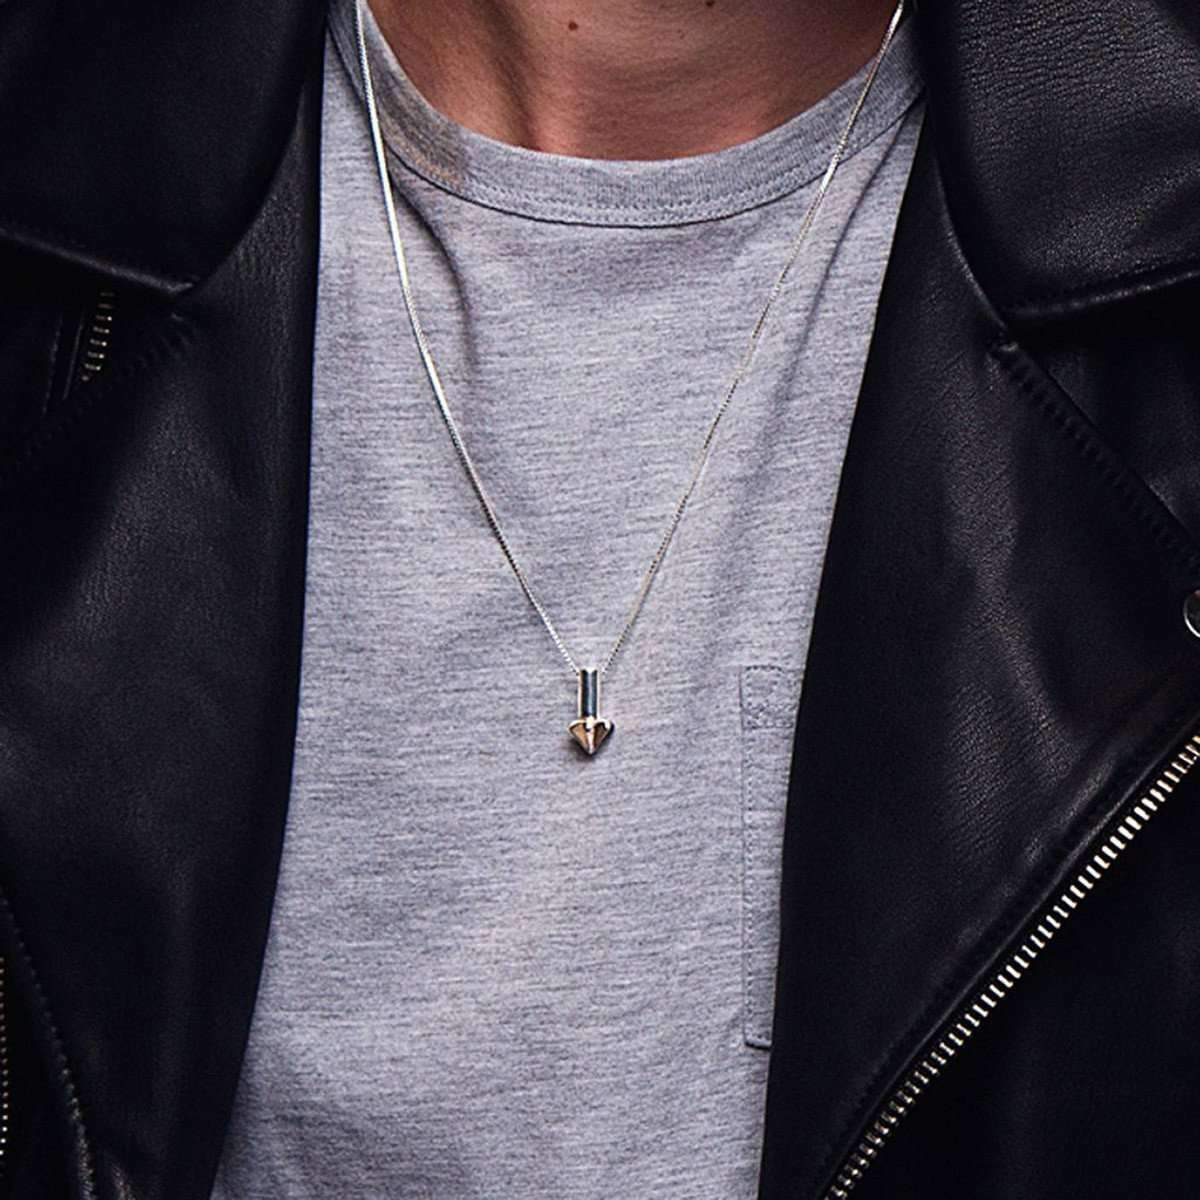 mens chain necklaces